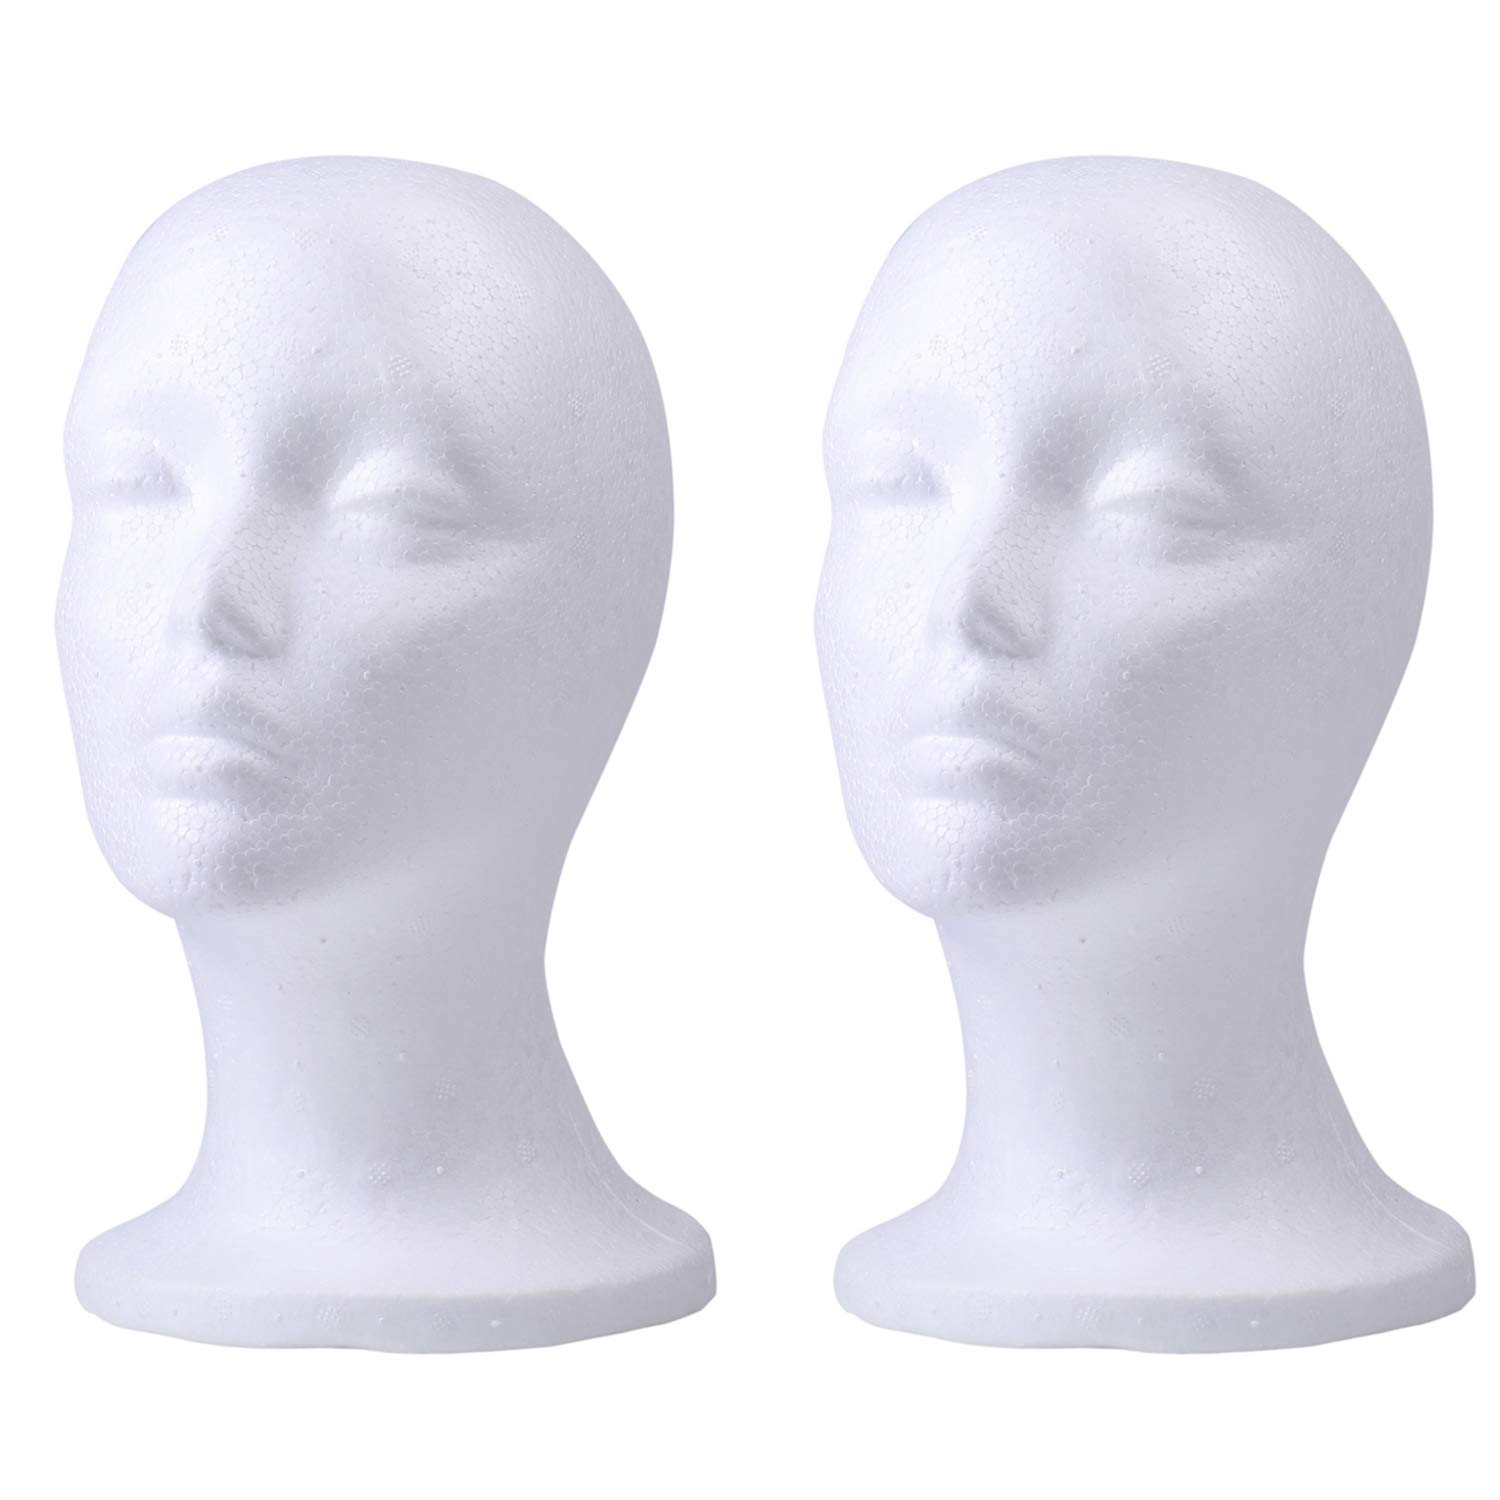 Foraineam 2 Pack Female Styrofoam Mannequin Head Cosmetics Model Head Wig Display Foam Mannequin Glasses Hat Hairpieces Stand by Foraineam